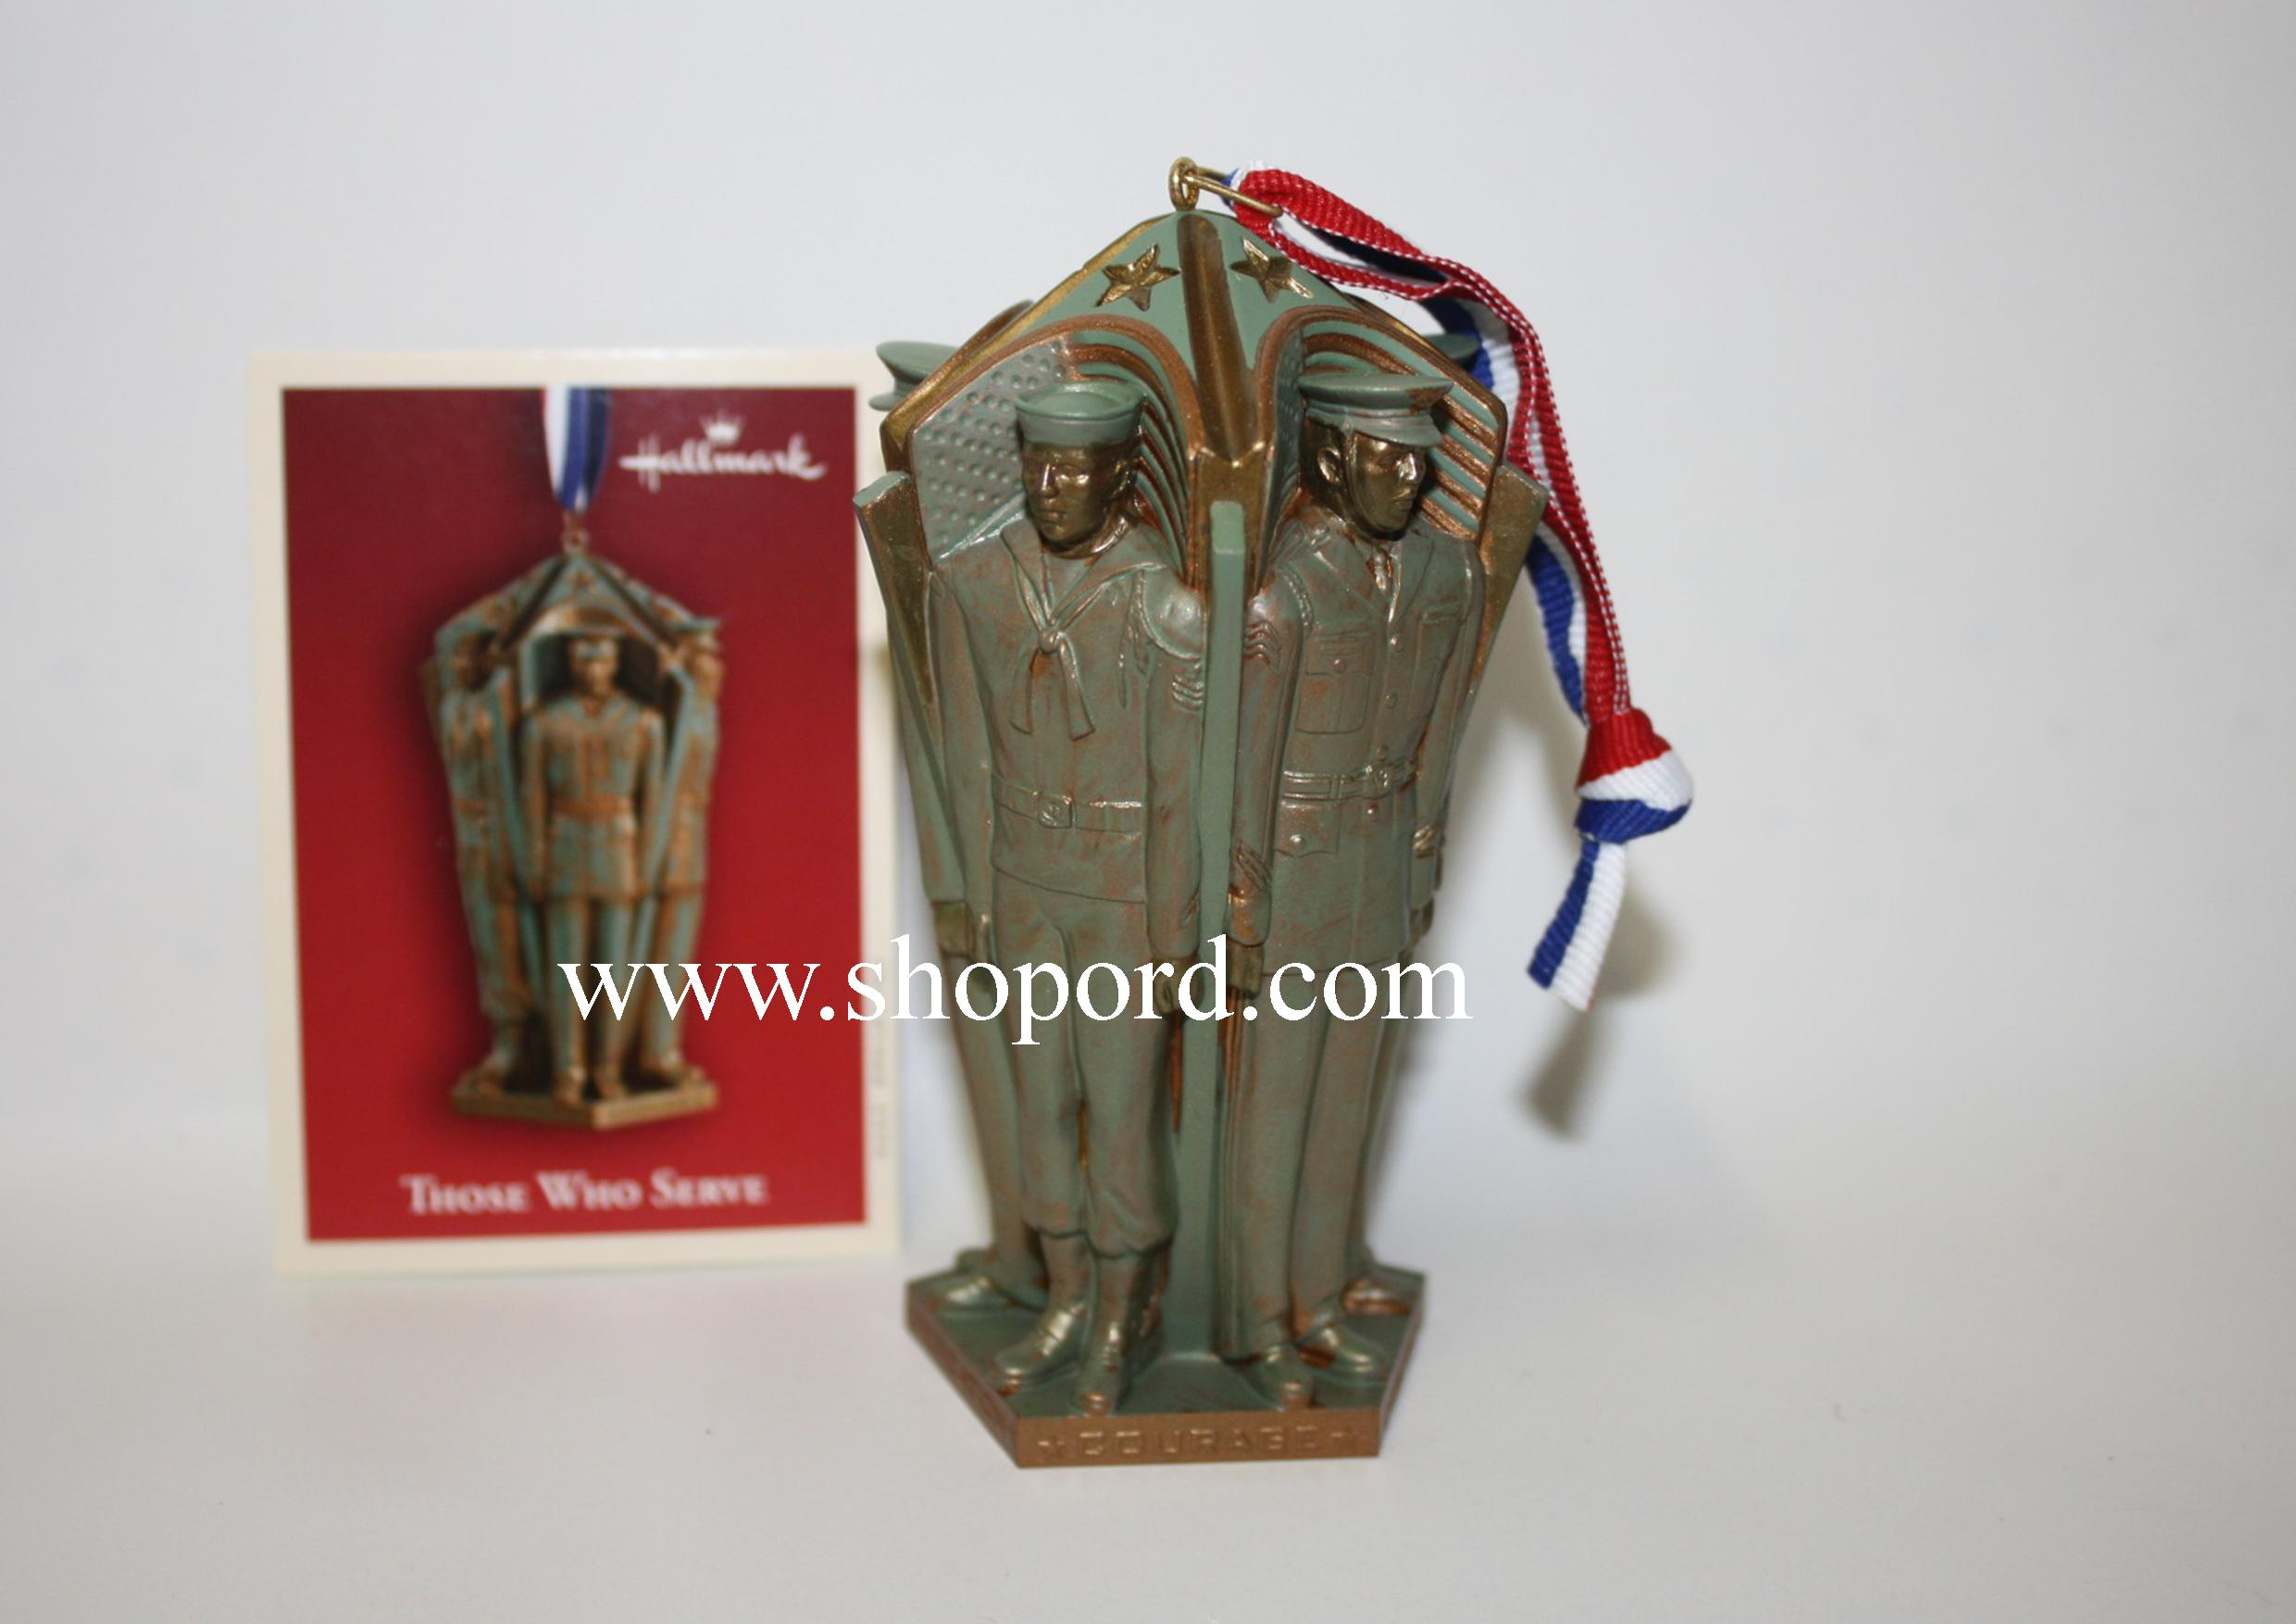 Hallmark 2004 Those Who Serve Ornament QXG5444